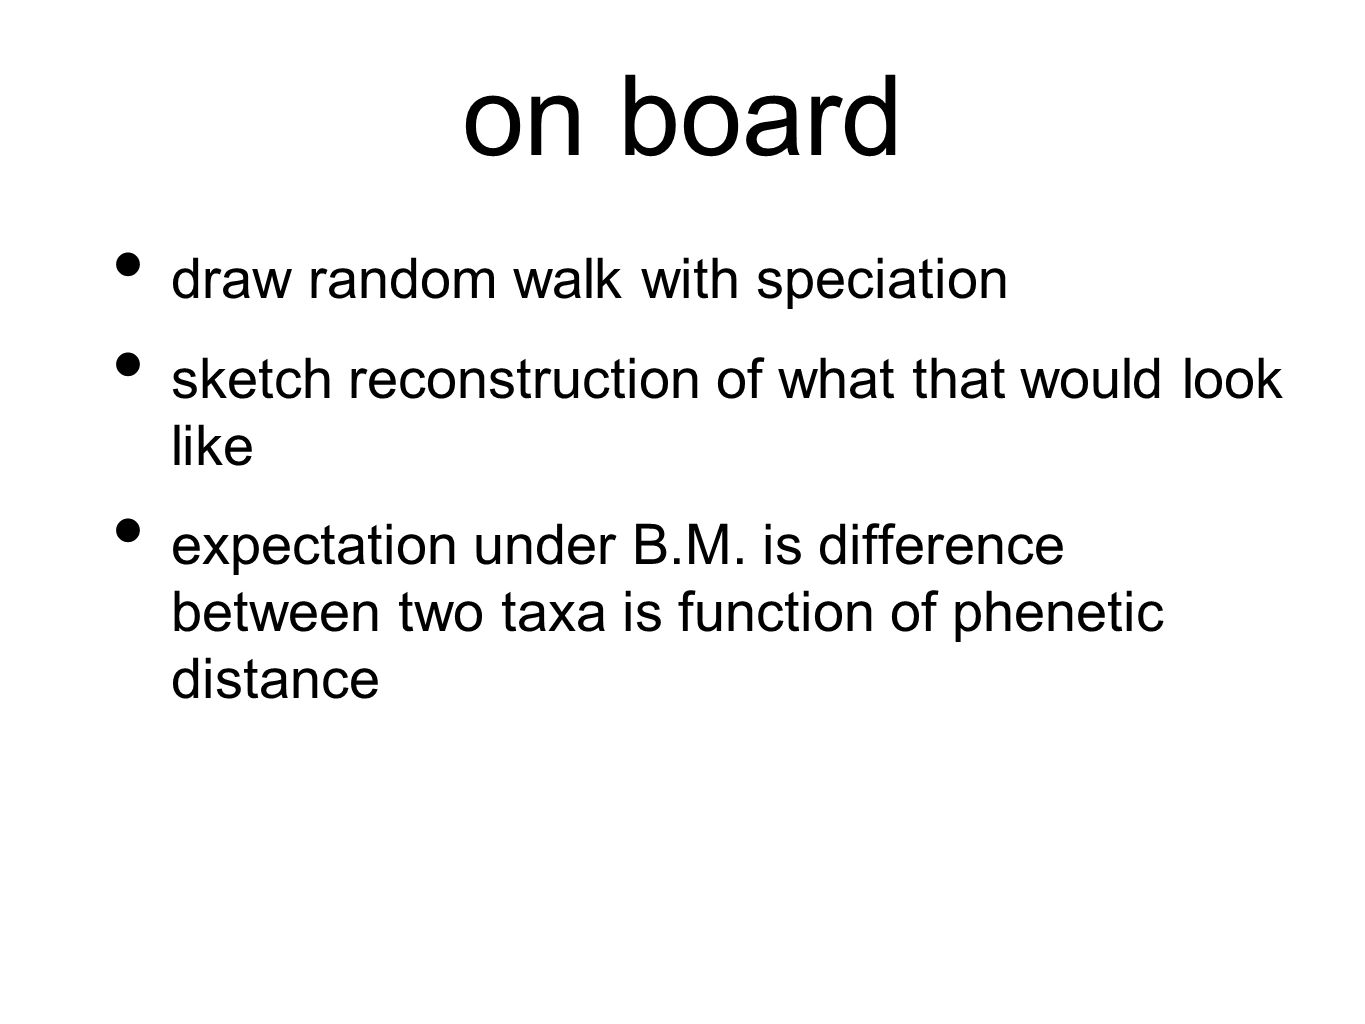 on board draw random walk with speciation sketch reconstruction of what that would look like expectation under B.M.